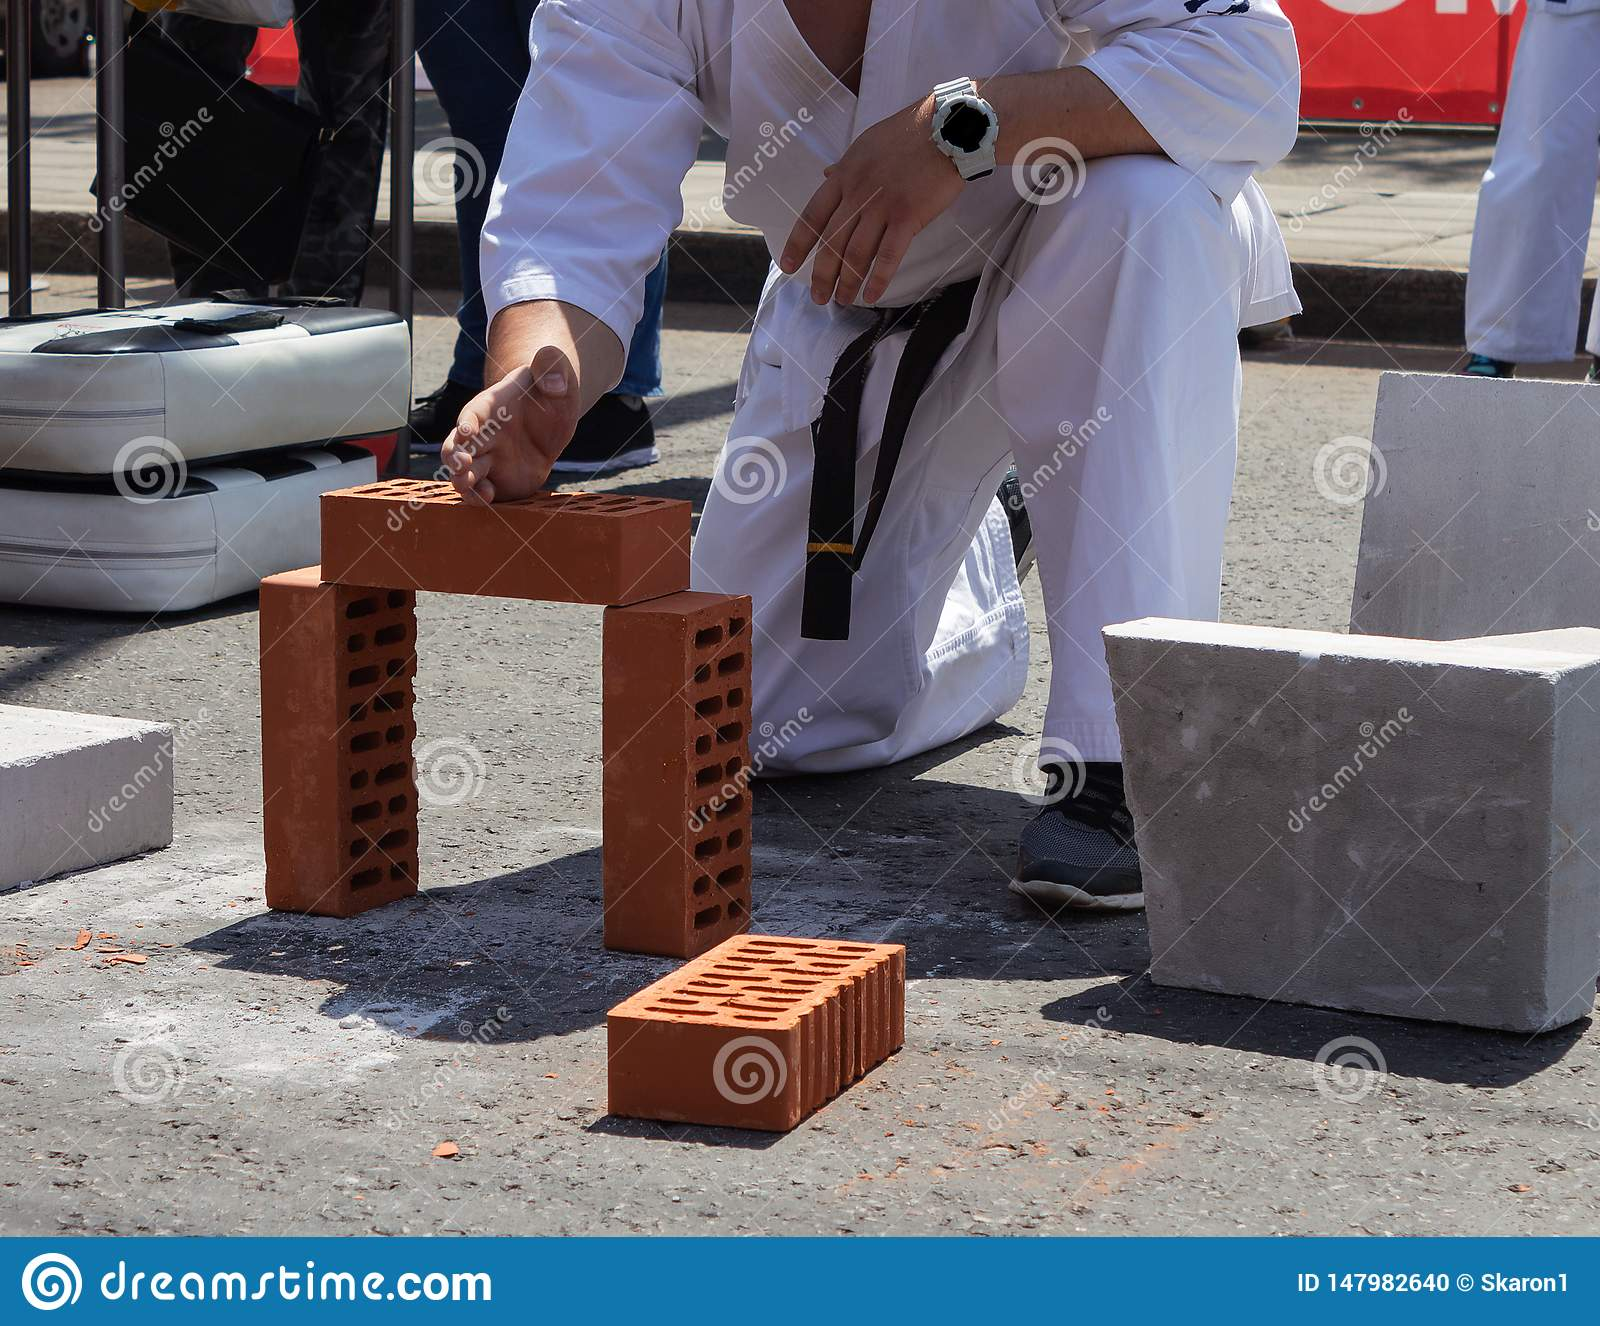 Karate player at a sporting event breaks a brick with his hand